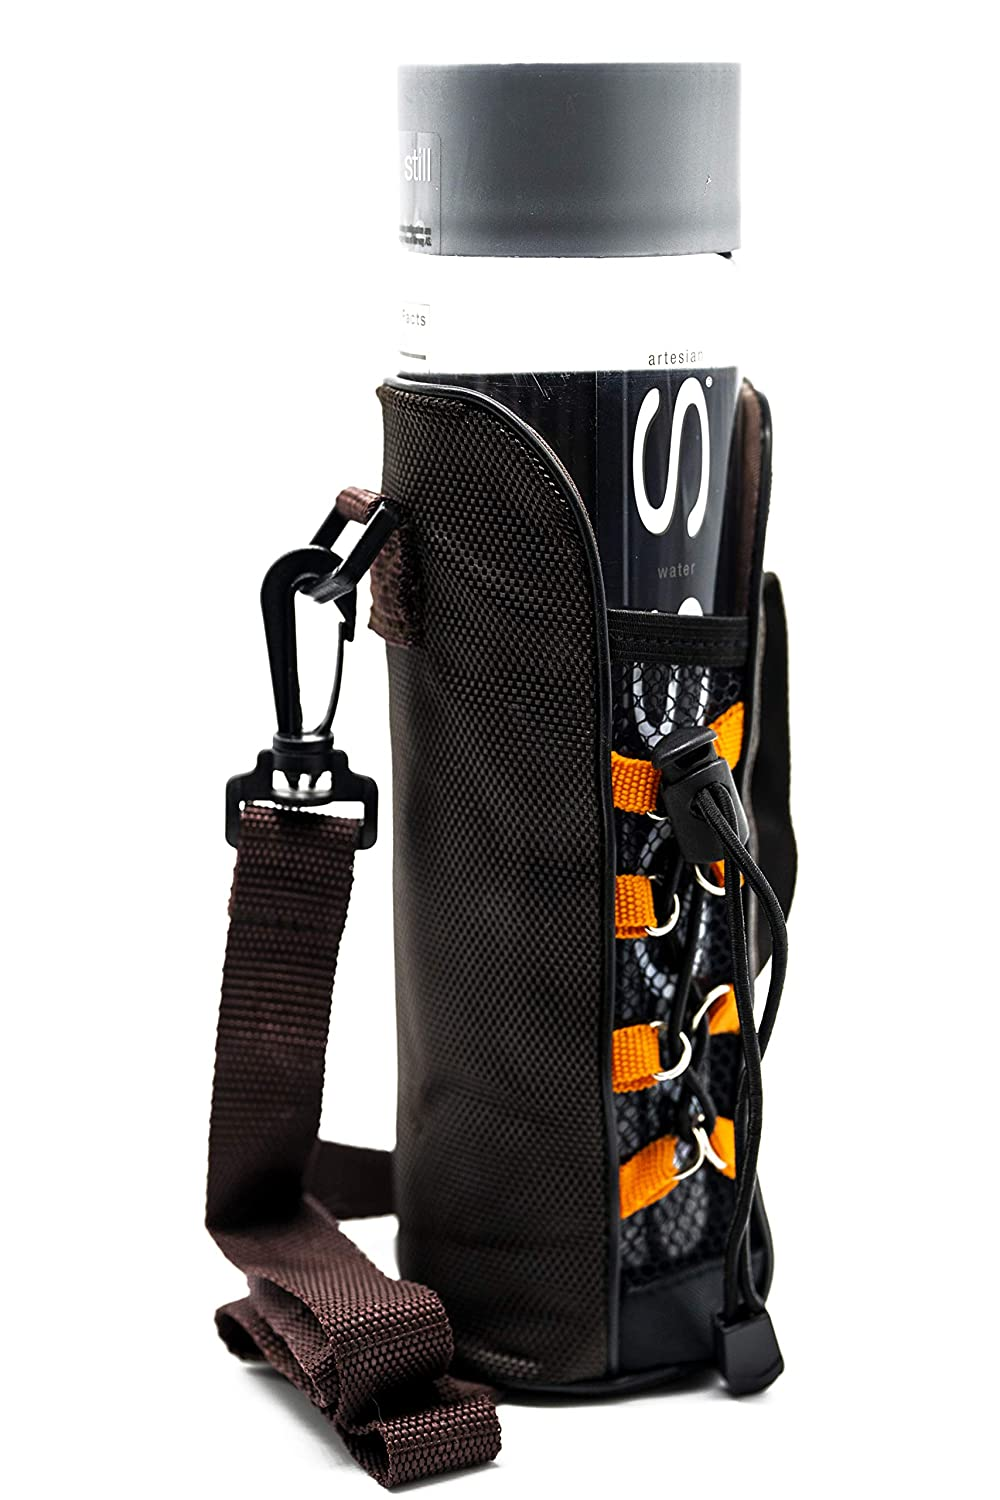 Stylish Light Brown Design with Drawstrings Camping Comfortable Water Bottle Carrier Sleeve with Shoulder Strap |Use with Stainless Steel Glass and Tall Sizes Great for Walking Hiking Outdoors RiLo